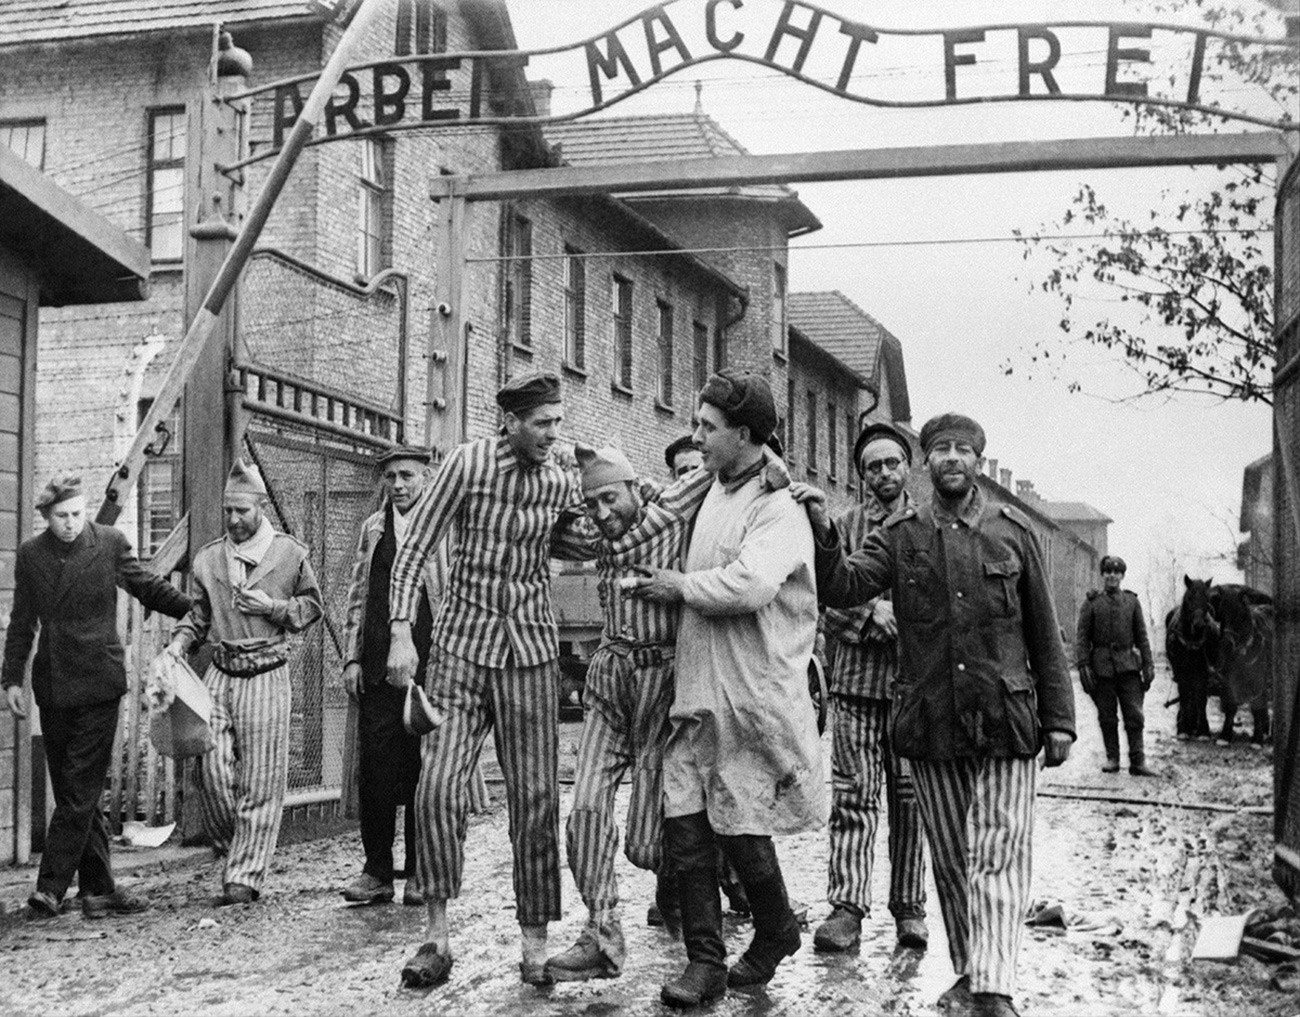 Liberated by the Soviet army, prisoners exit the labor camp Auschwitz-Birkenau, 1945